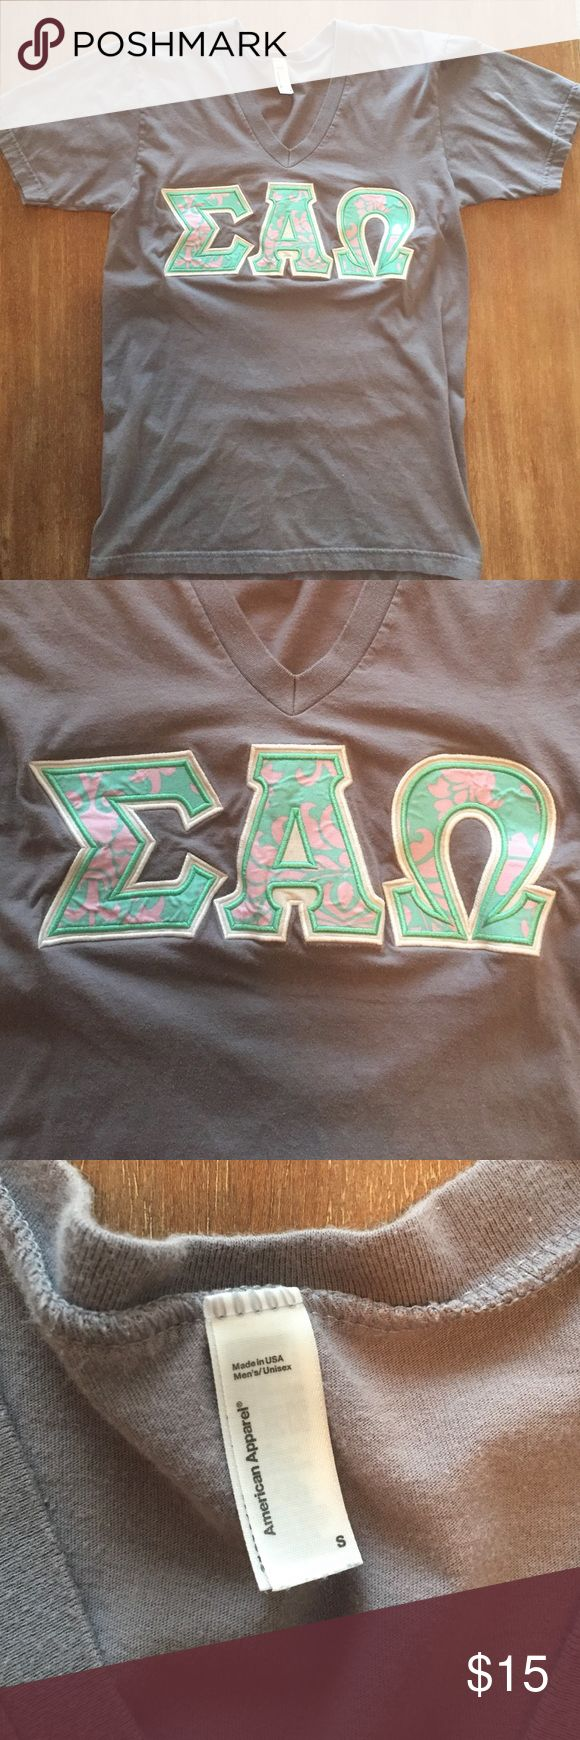 Sigma Alpha Omega Greek Letter Shirt Sigma Alpha Omega Greek Letter Shirt. Brand is American Apparel size Small. Great condition. American Apparel Tops Tees - Short Sleeve